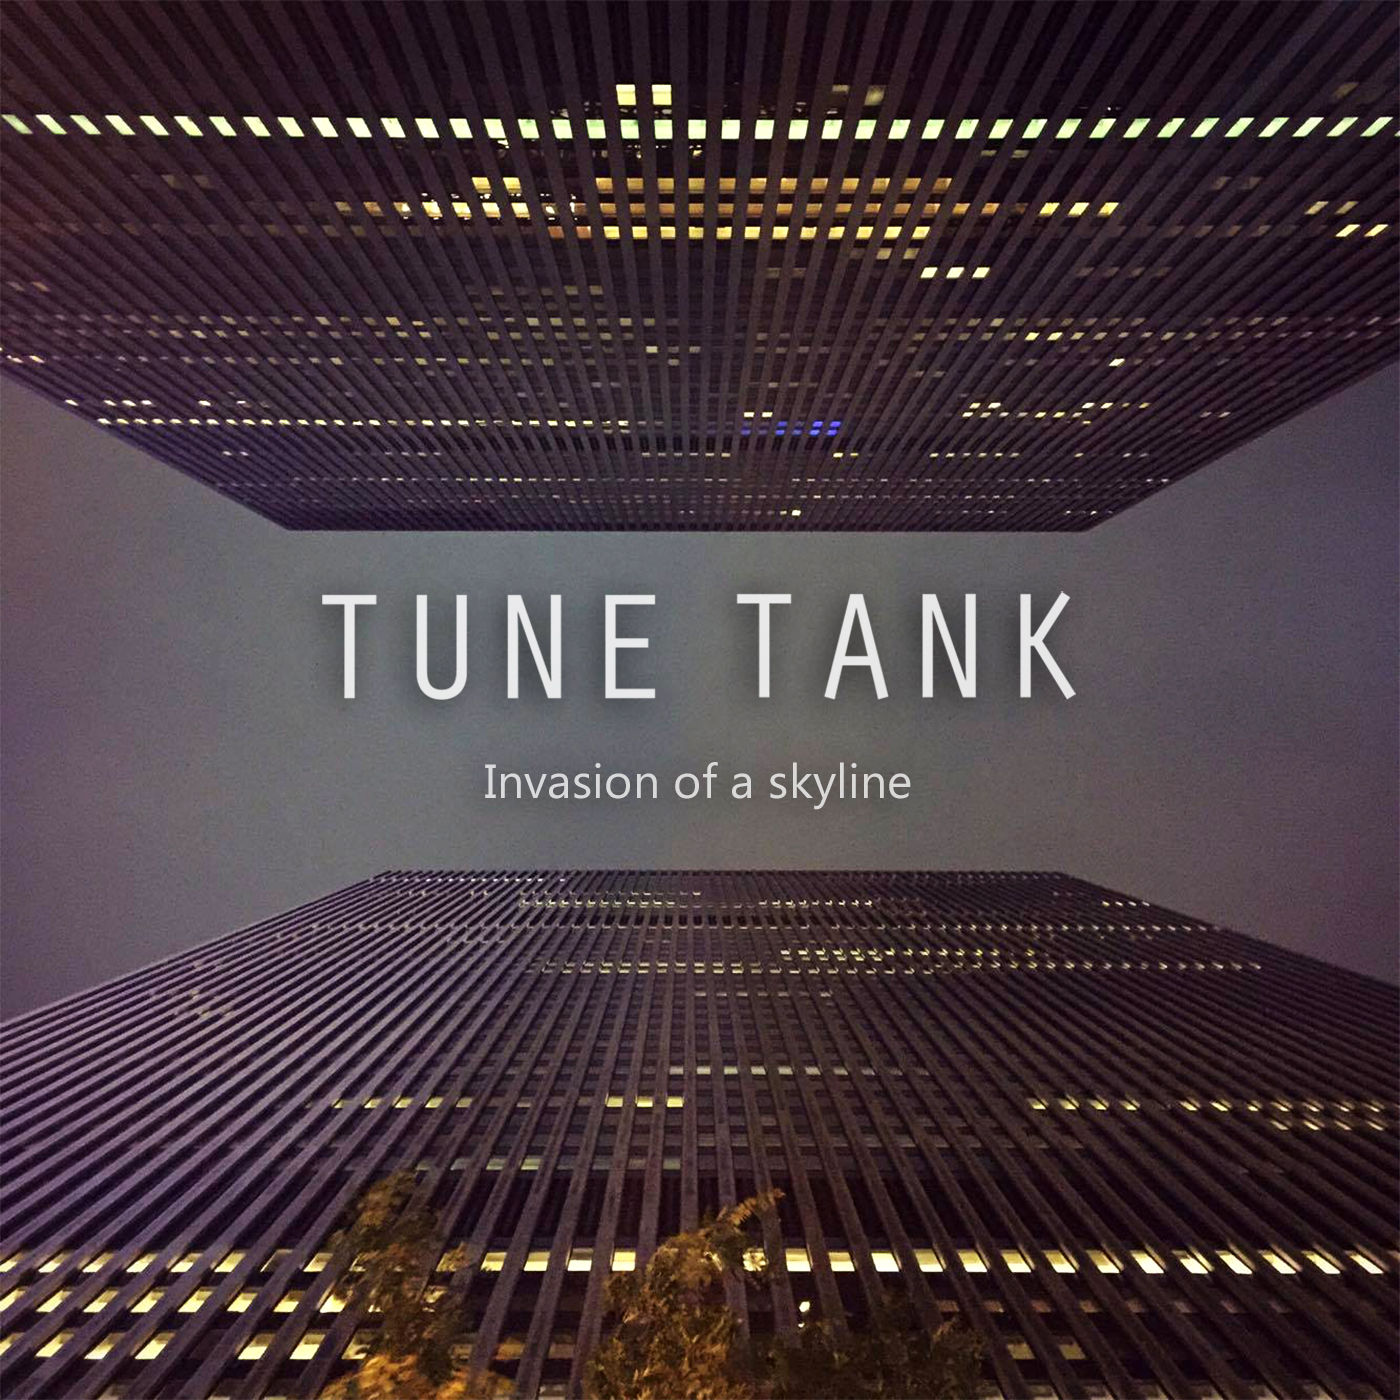 Tune Tank - Invasion of a skyline